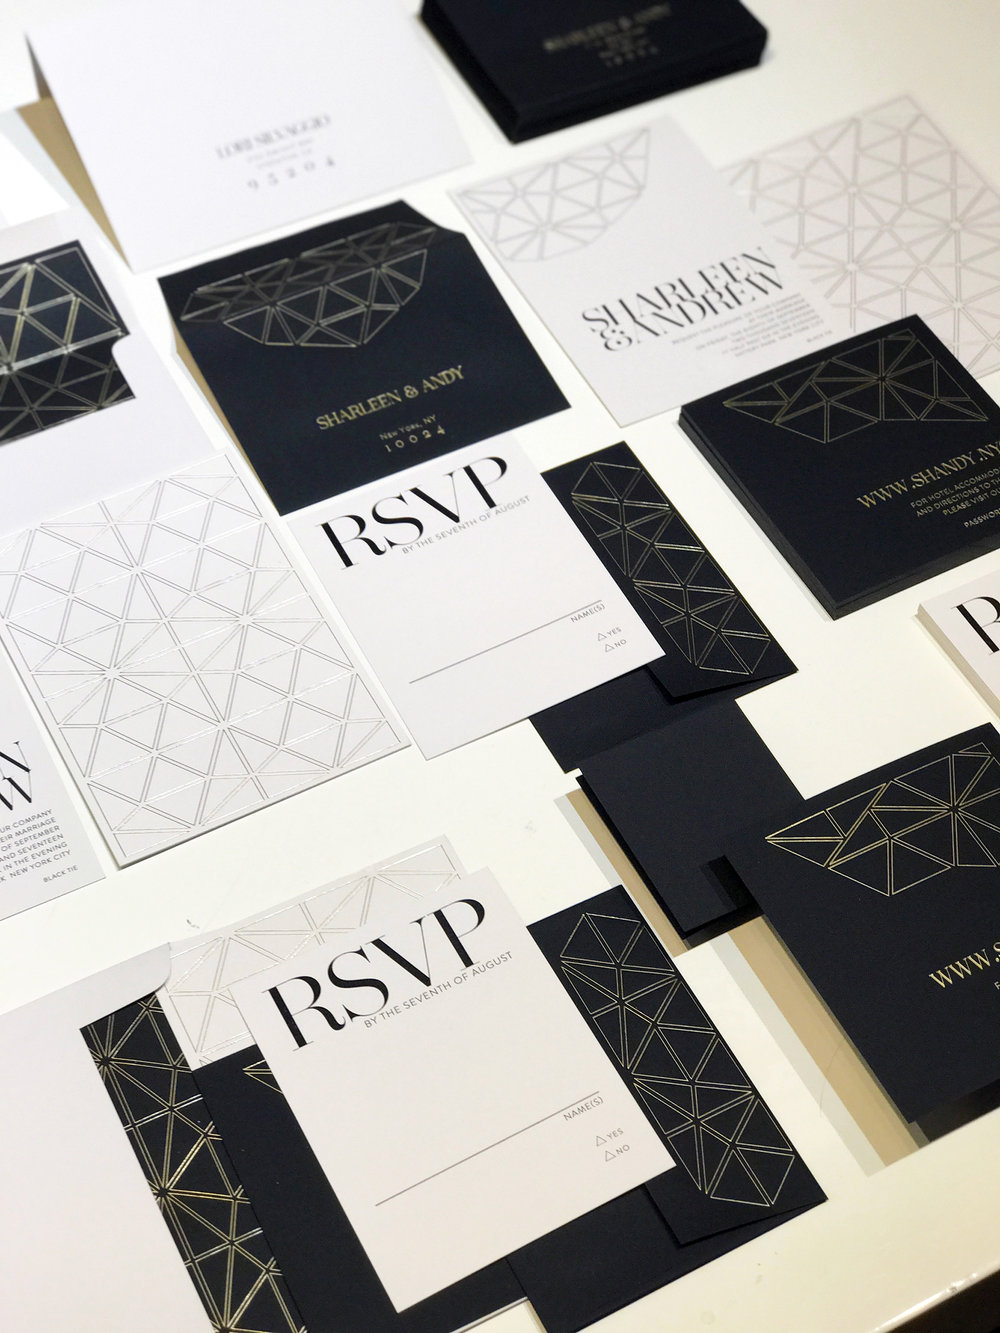 Our invitation suite by  Inked Carbon ! Geometric patterns in gold foil. Text in Letterpress kiss. I am in love!